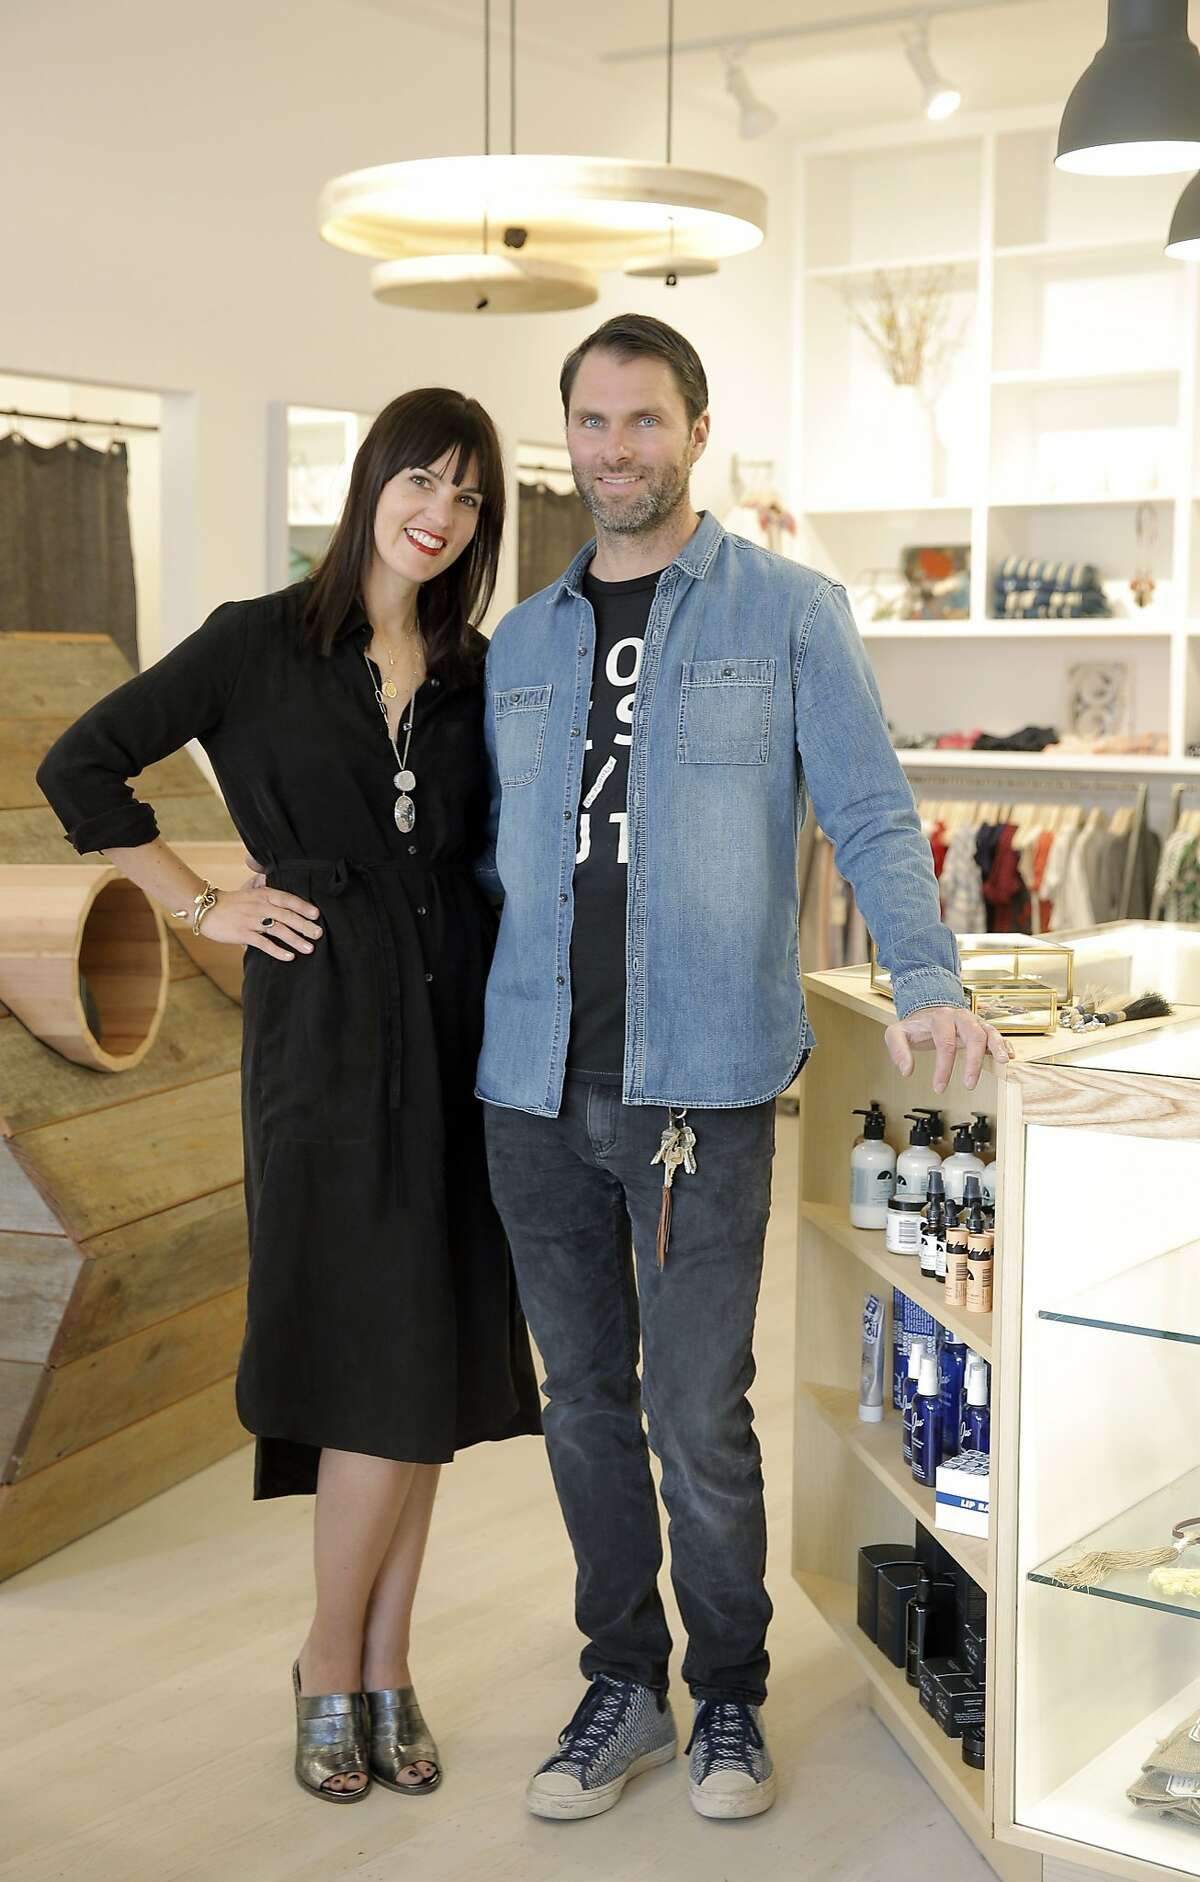 Lauren and Josh Podolls, the owners of Podolls on 24th Street in San Francisco, Calif., on the day they opened the store, Thursday, March 5, 2015.